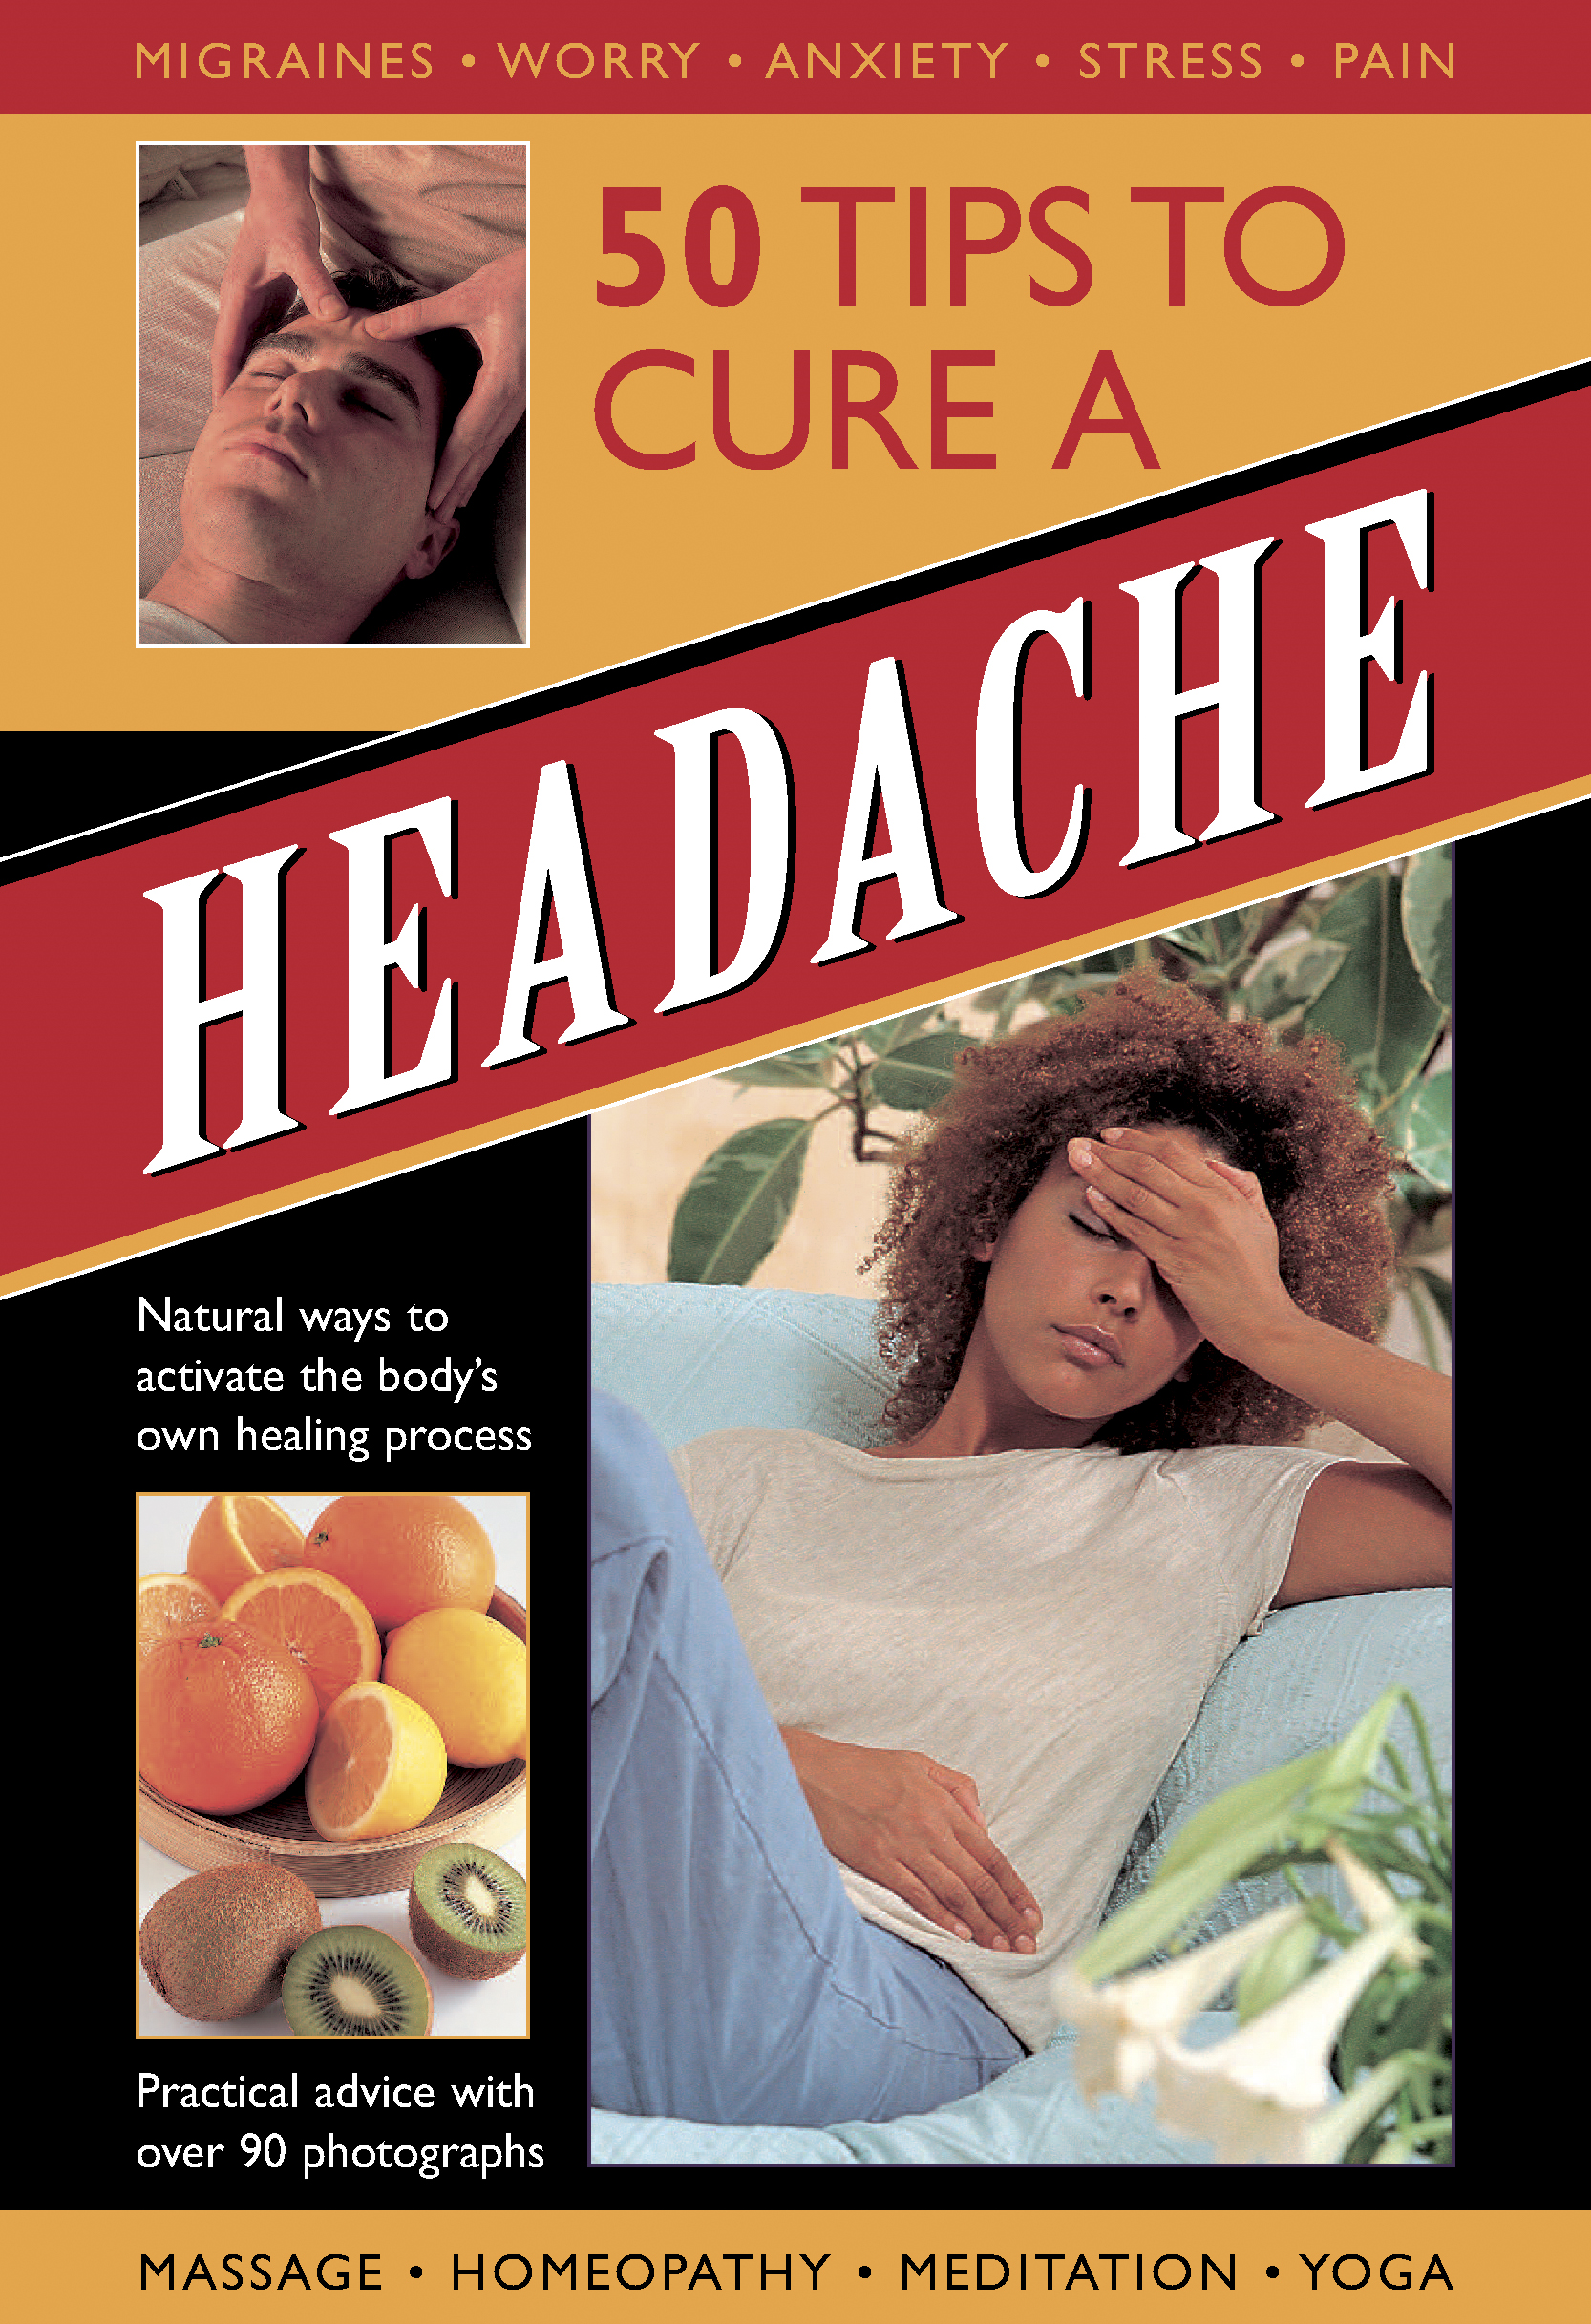 50 Tips to Cure a Headache Natural Ways to Activate The Bodys Own Healing Process